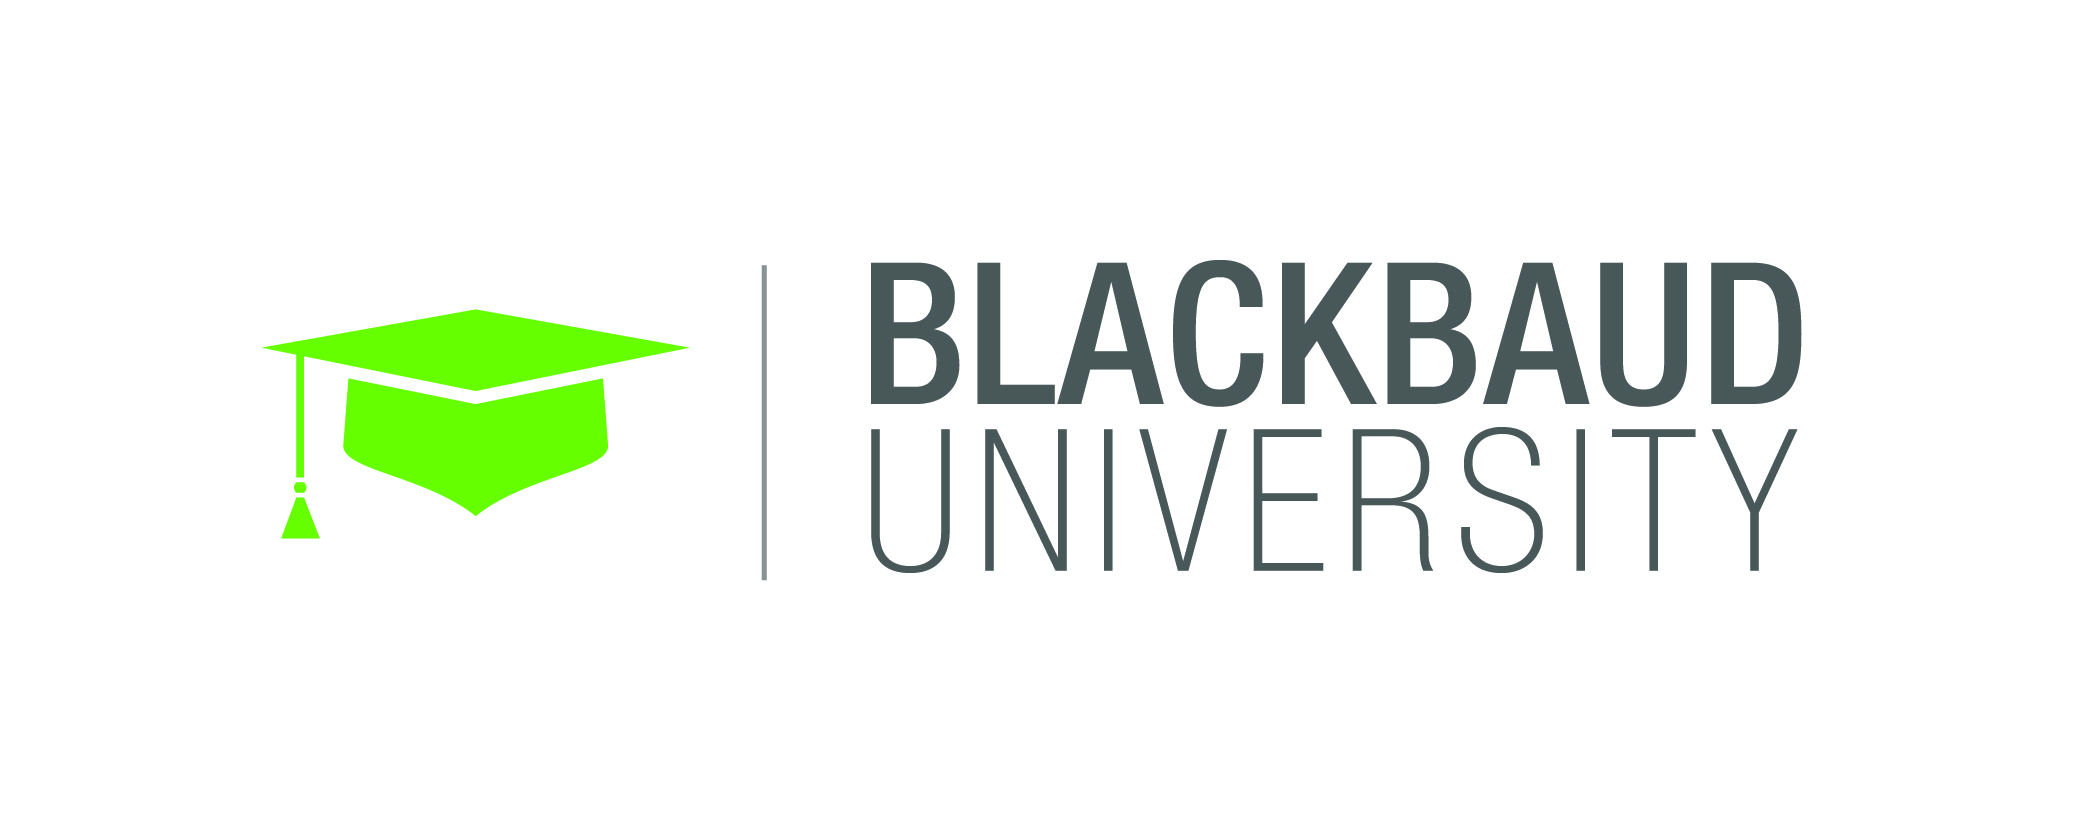 Blackbaud University is Your Strategic Partner